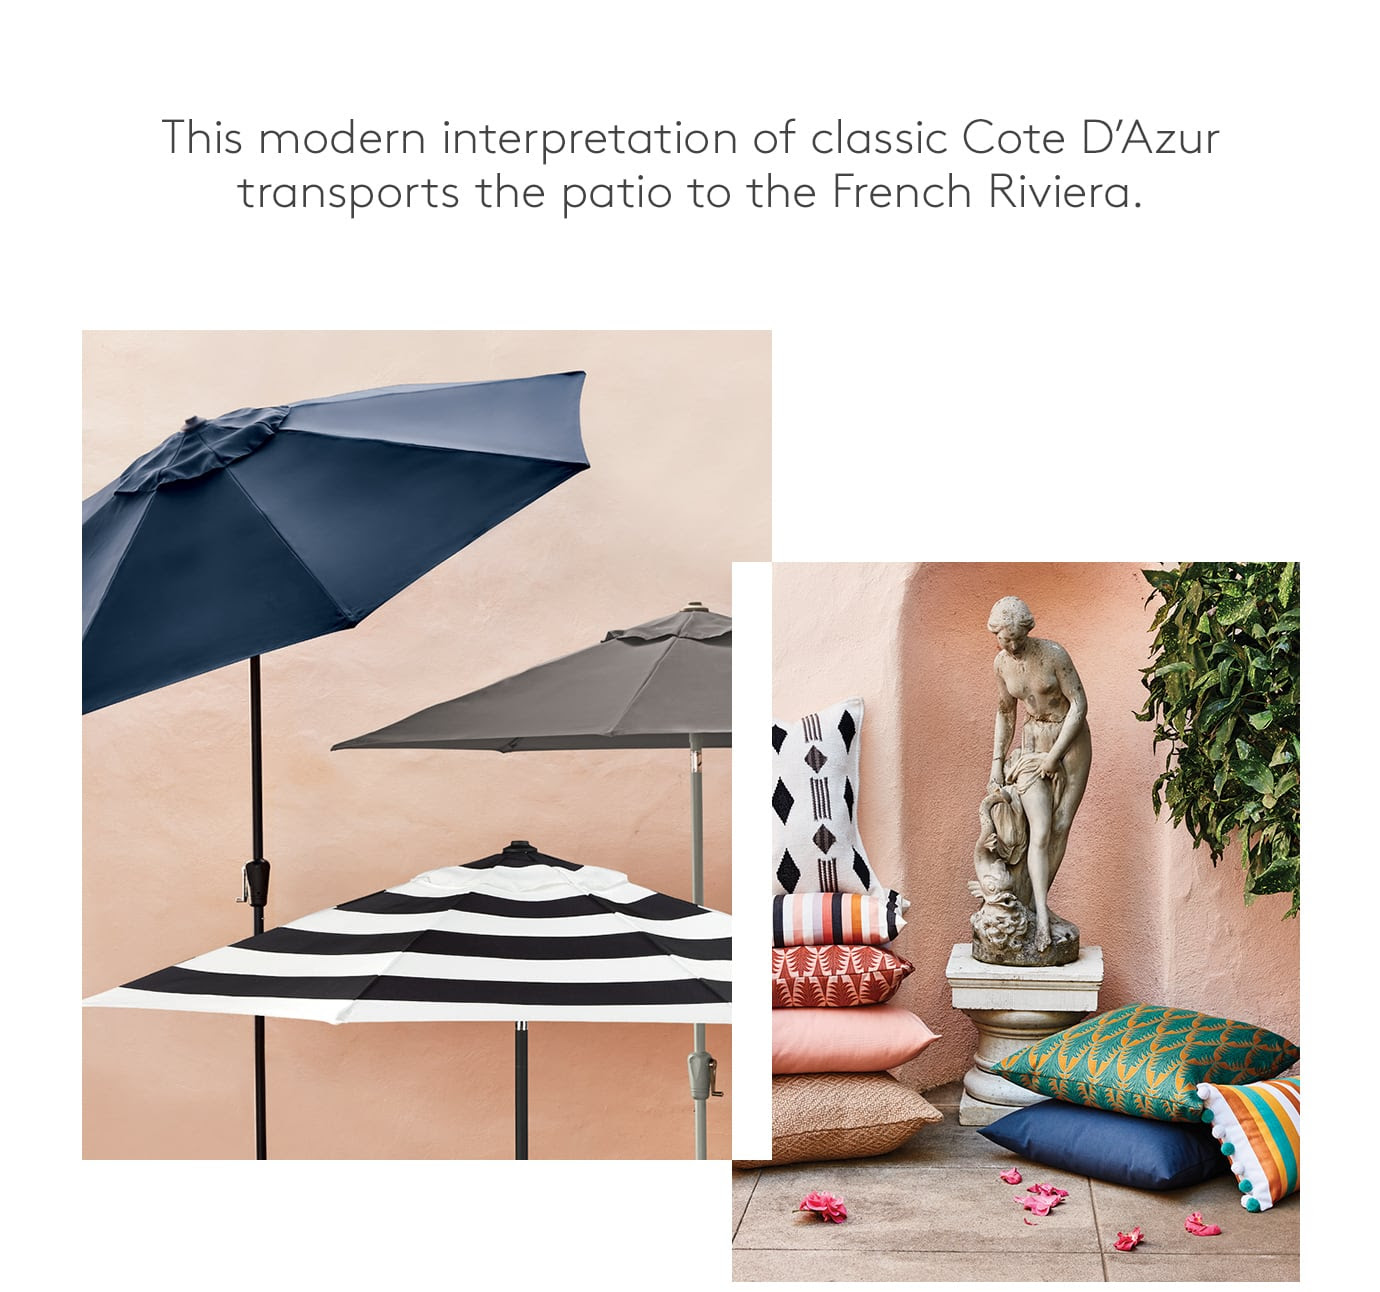 This modern interpretation of classic Cote D'Azur transports the patio to the French Riviera.